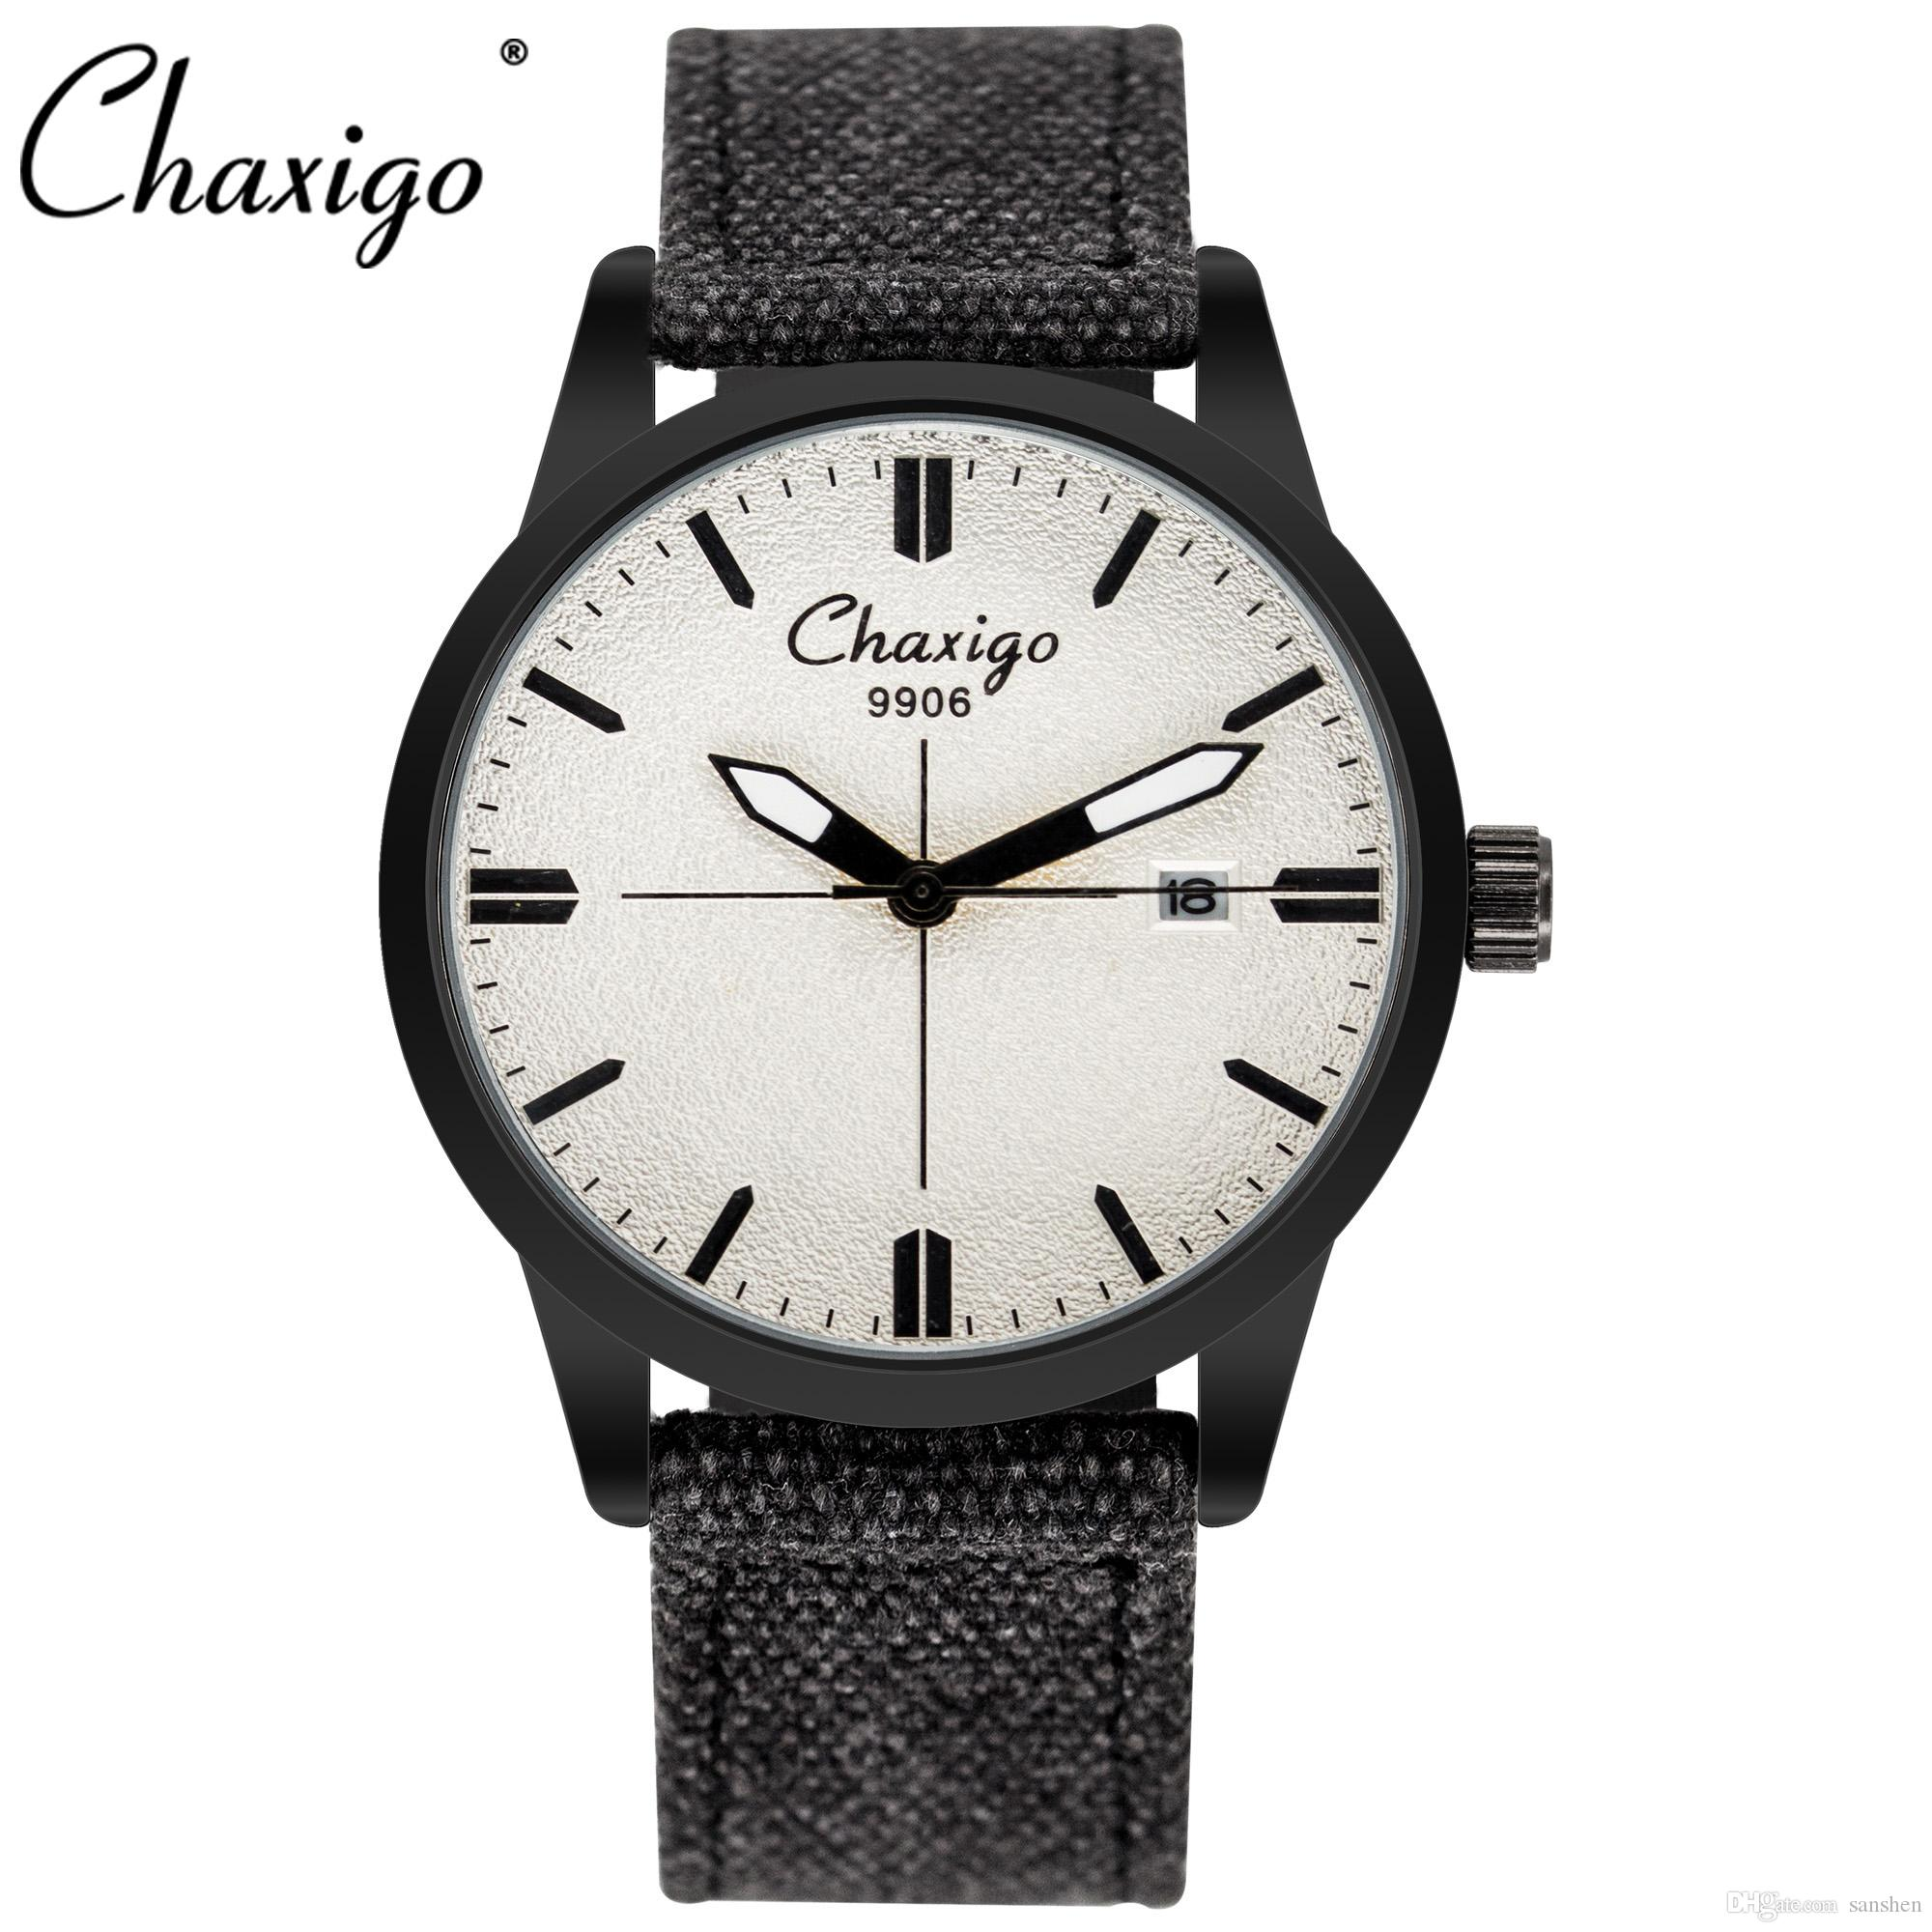 afrique and design vegan an lily watches watch womens egypt quality asa fashion collections leather botanica egyptian with black made strap features